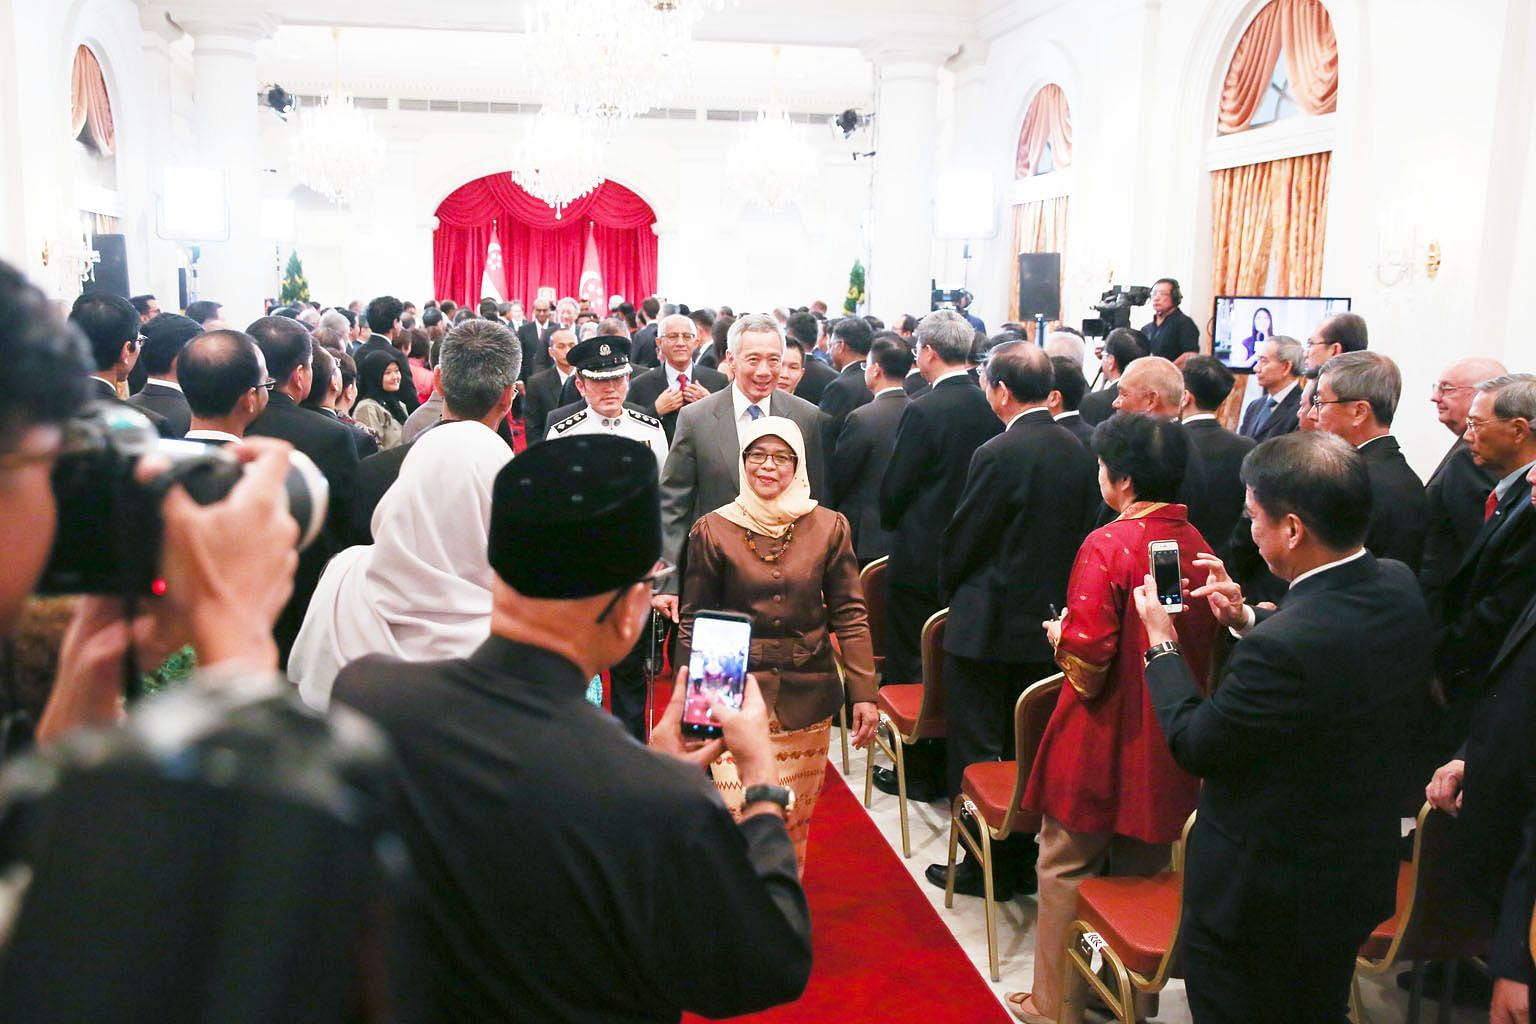 President Halimah Yacob leaving the State Room in the Istana after being sworn in yesterday. With her are Prime Minister Lee Hsien Loong and her husband, Mr Mohamed Abdullah Alhabshee (in red tie, behind PM Lee).